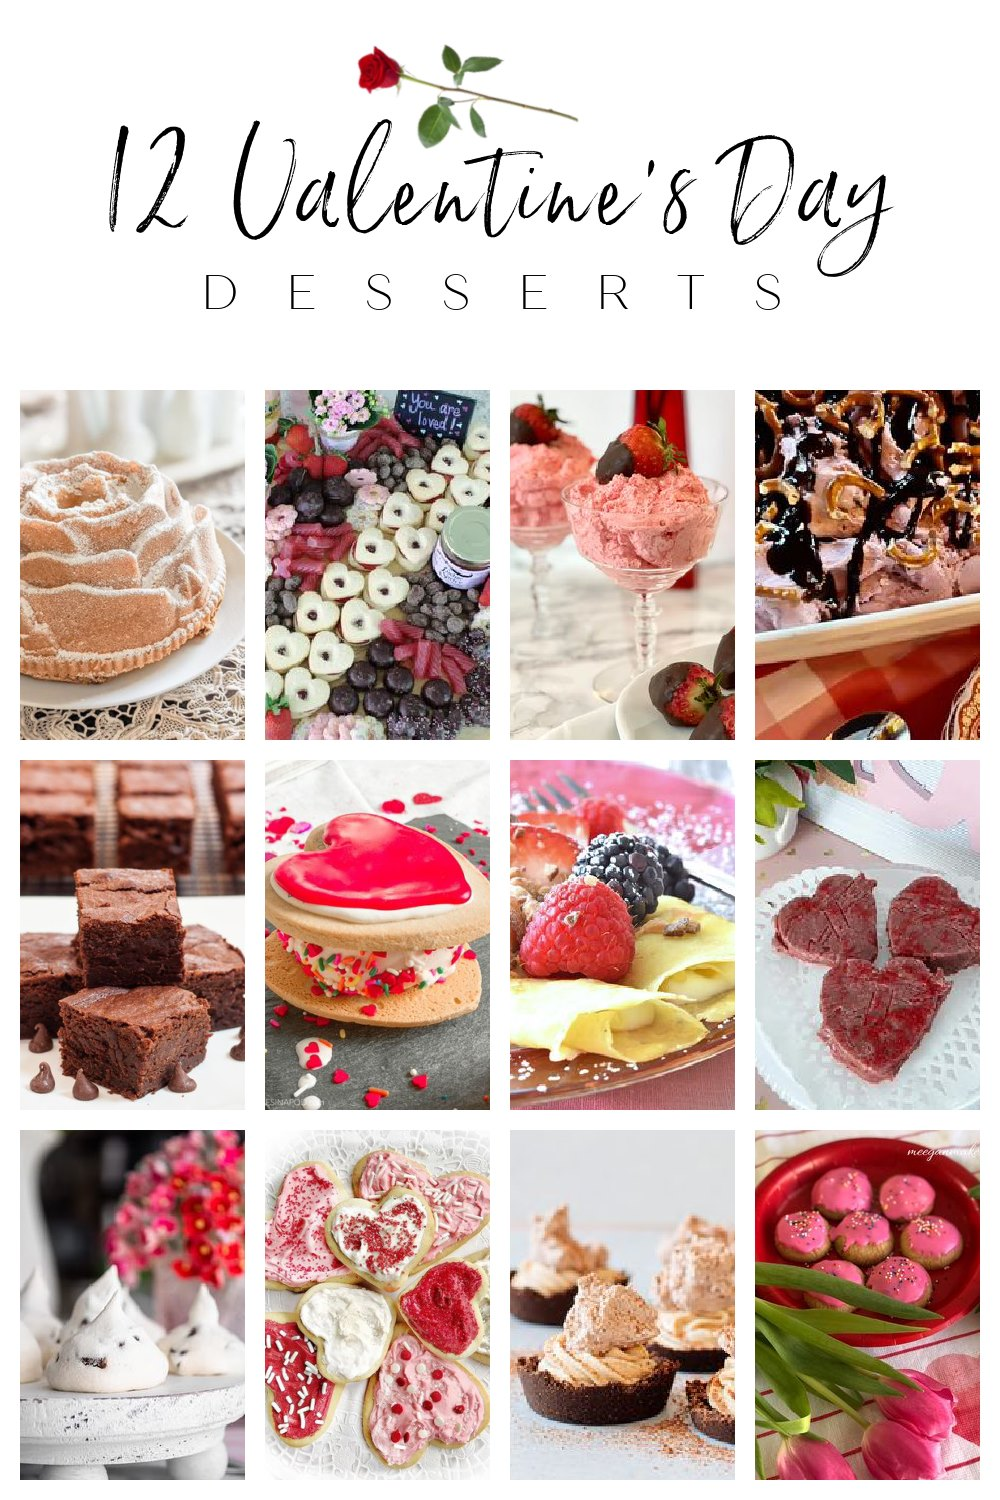 Get ideas for desserts to make for Valentine's Day or any time of the year.  These recipes are tried and true and are sure to please your family, sweetheart, or your galentine. via @spaula